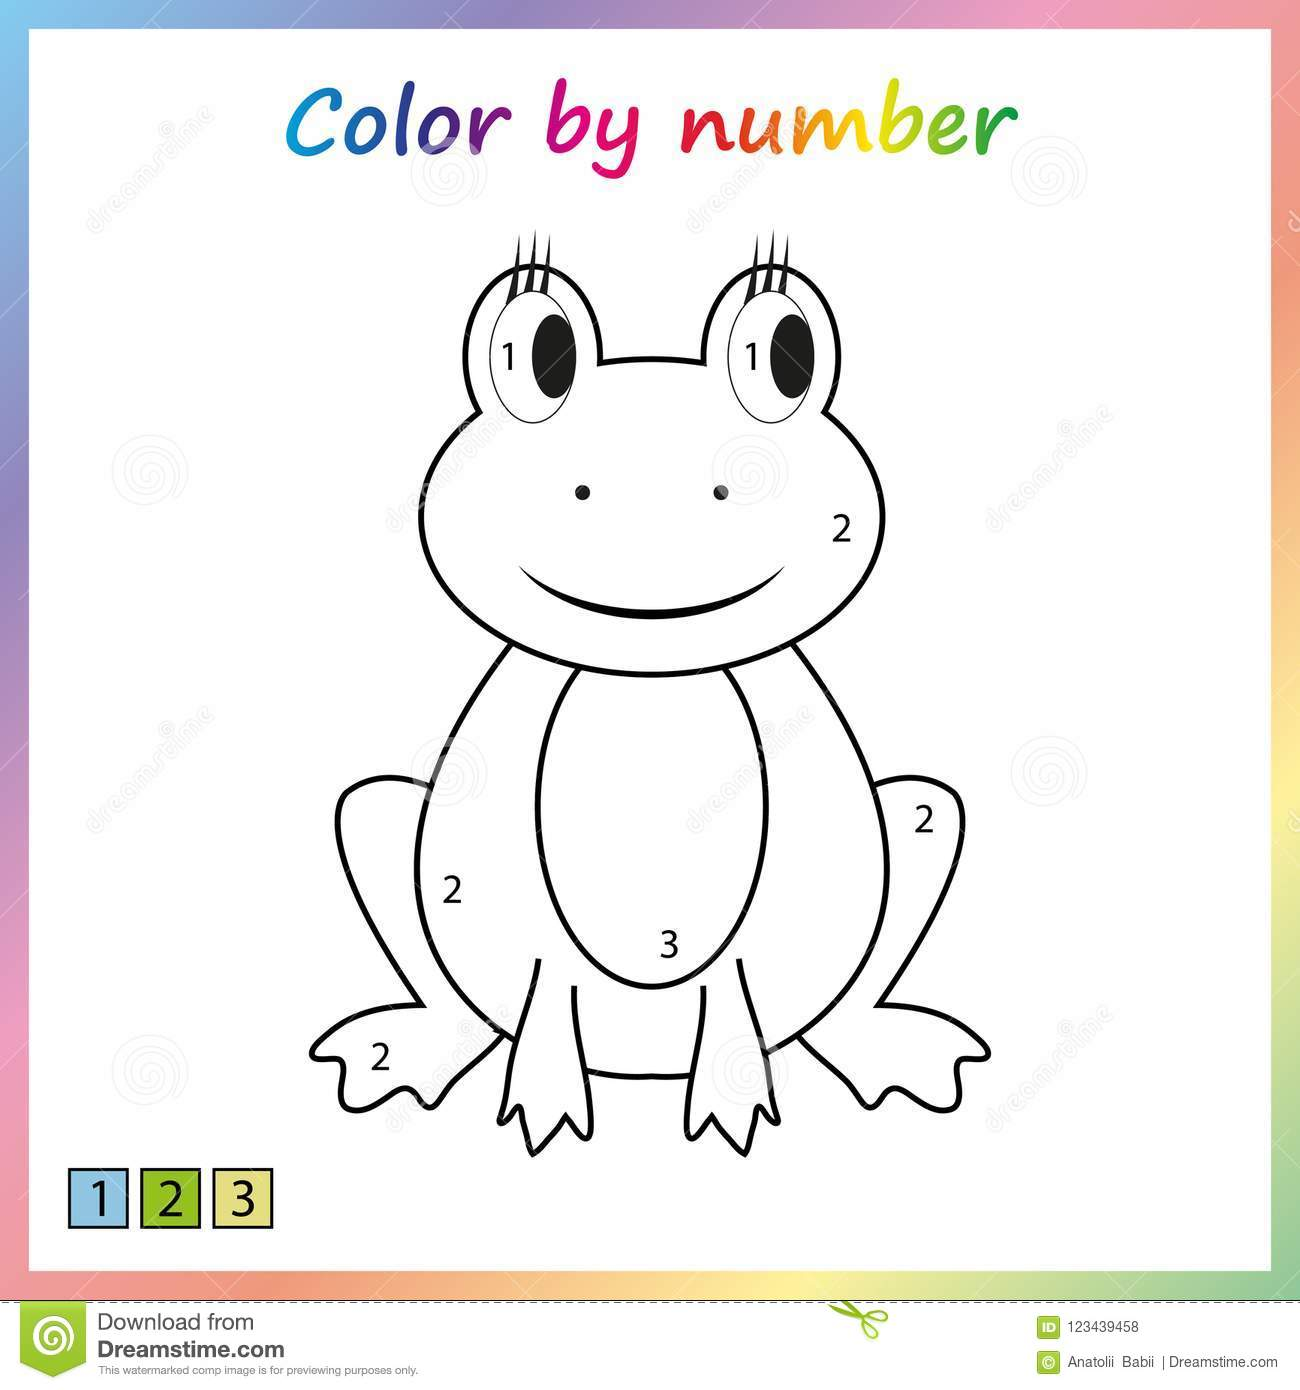 Worksheet For Education Painting Page Color By Numbers Game For Preschool Kids Stock Vector